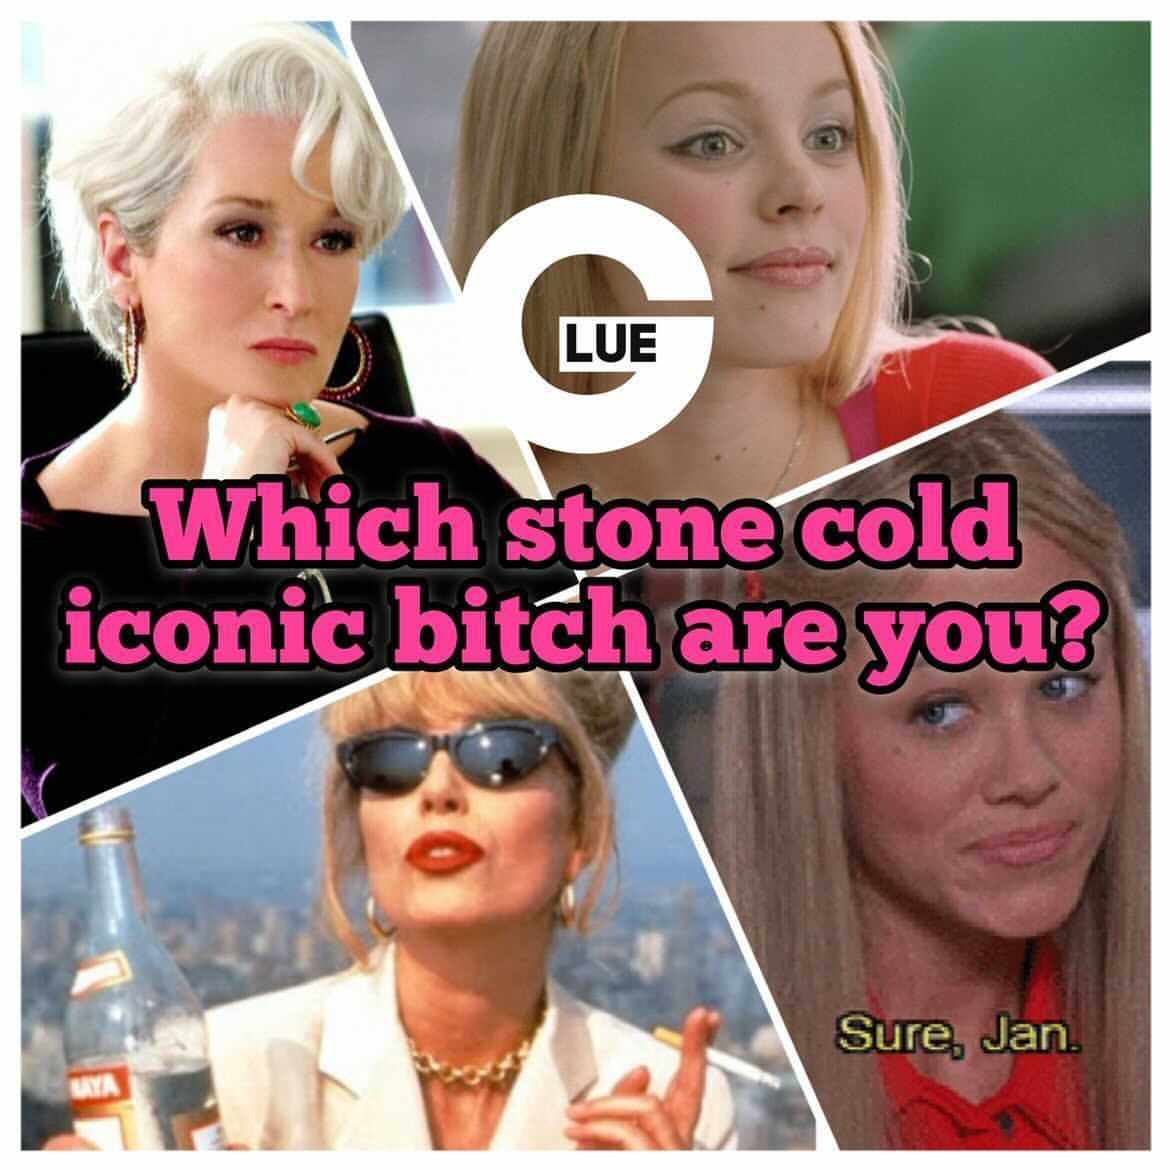 QUIZ: Which Iconic Stone Cold Bitch Are You?